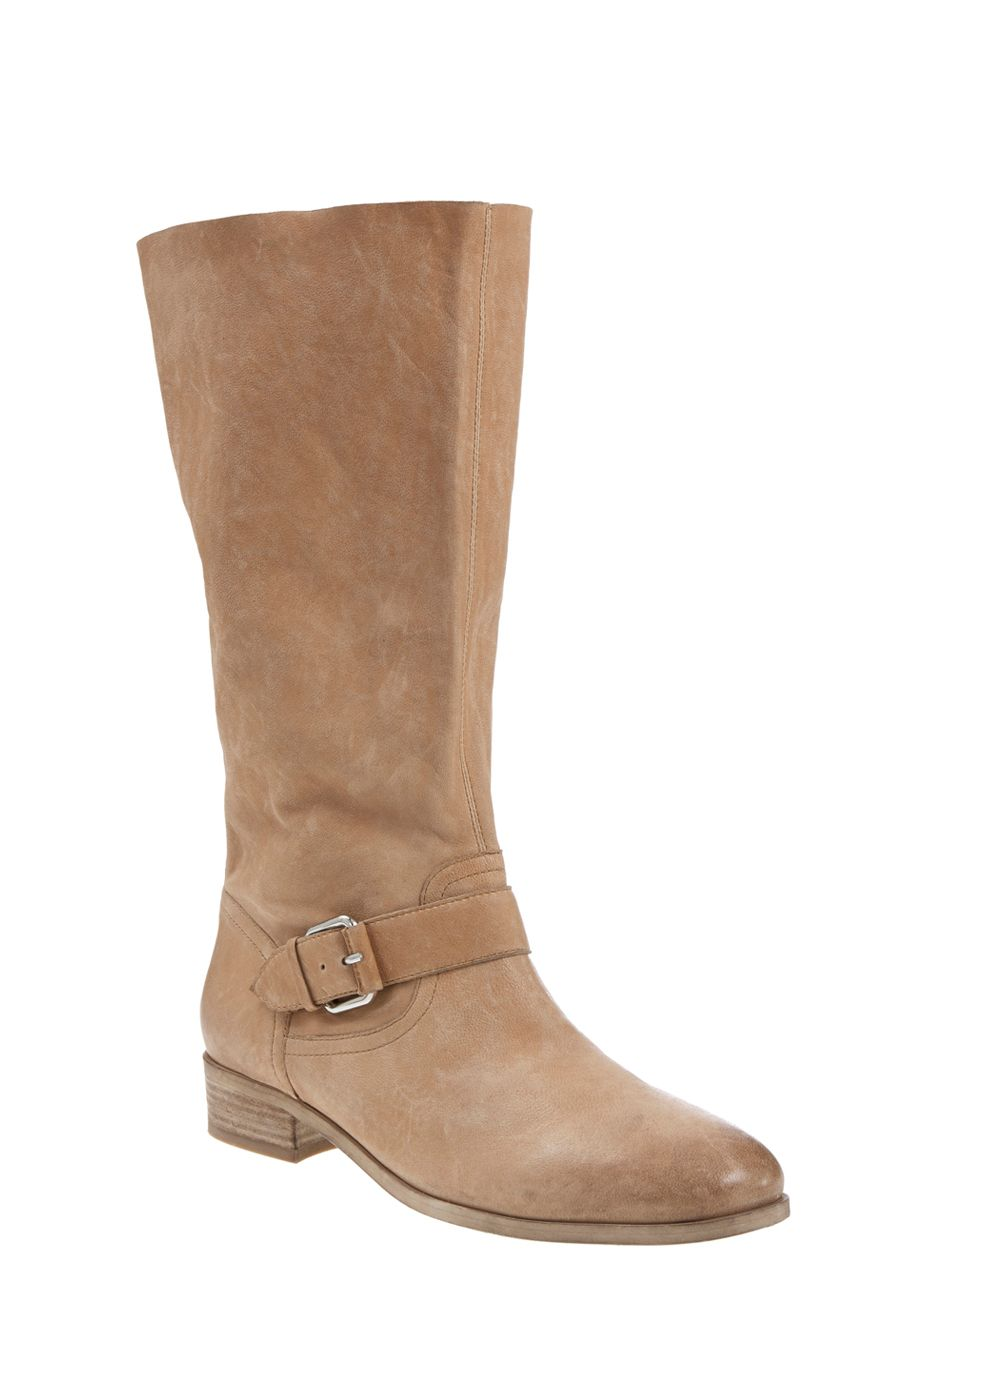 Nude pippa soft leather boot